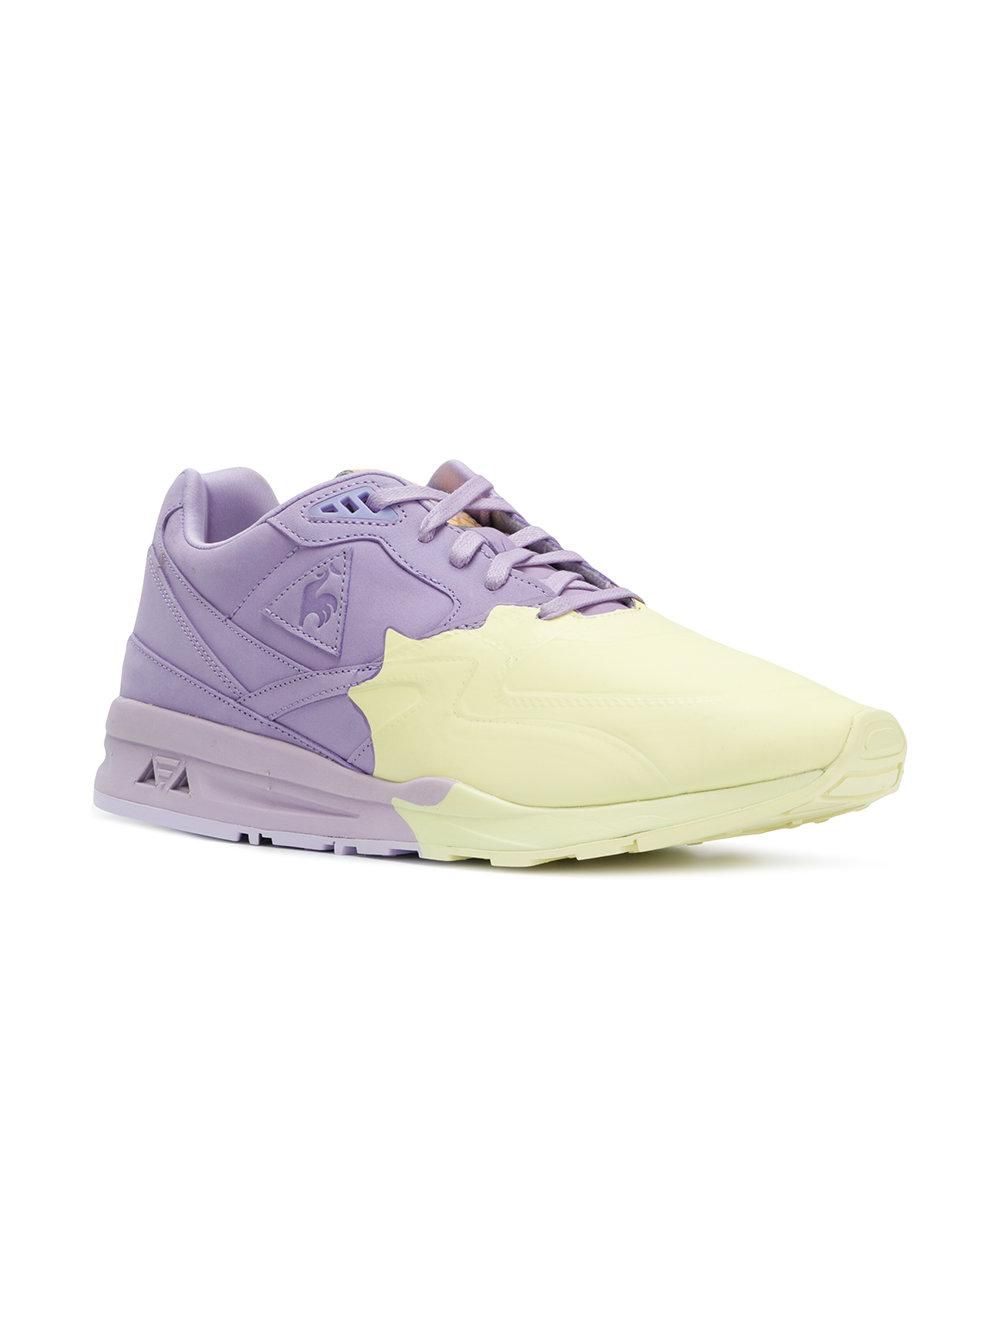 lace up tint sneakers - Pink & Purple Le Coq Sportif Discount Explore Outlet 100% Authentic iSY1zku